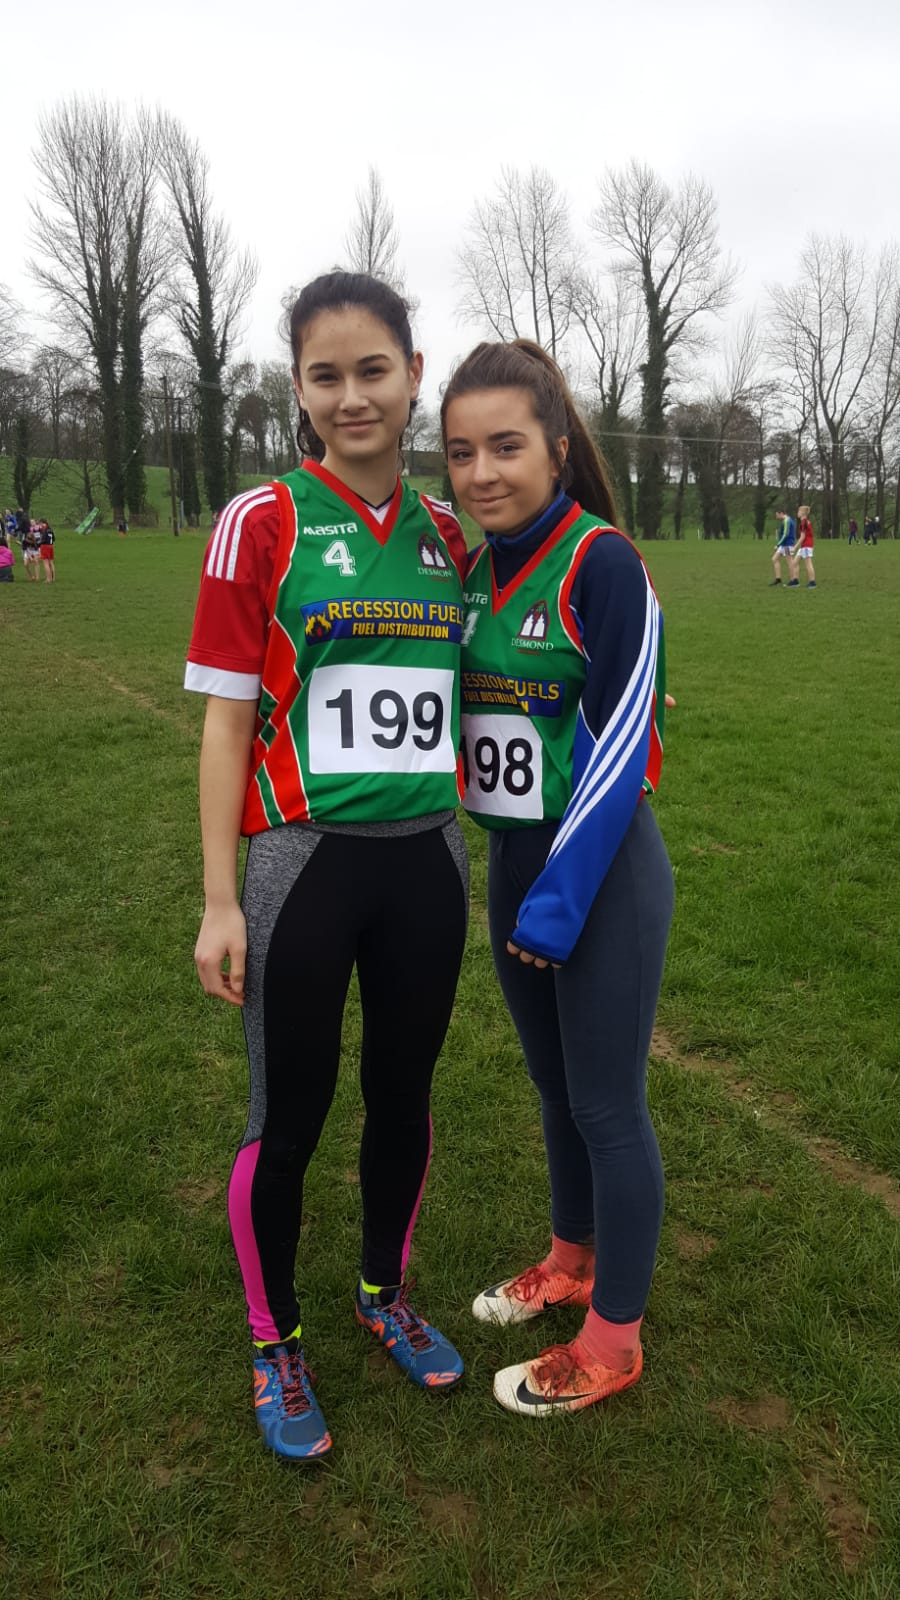 Orla Mullane and Jody Duffy participated who in the North Munster Cross Country